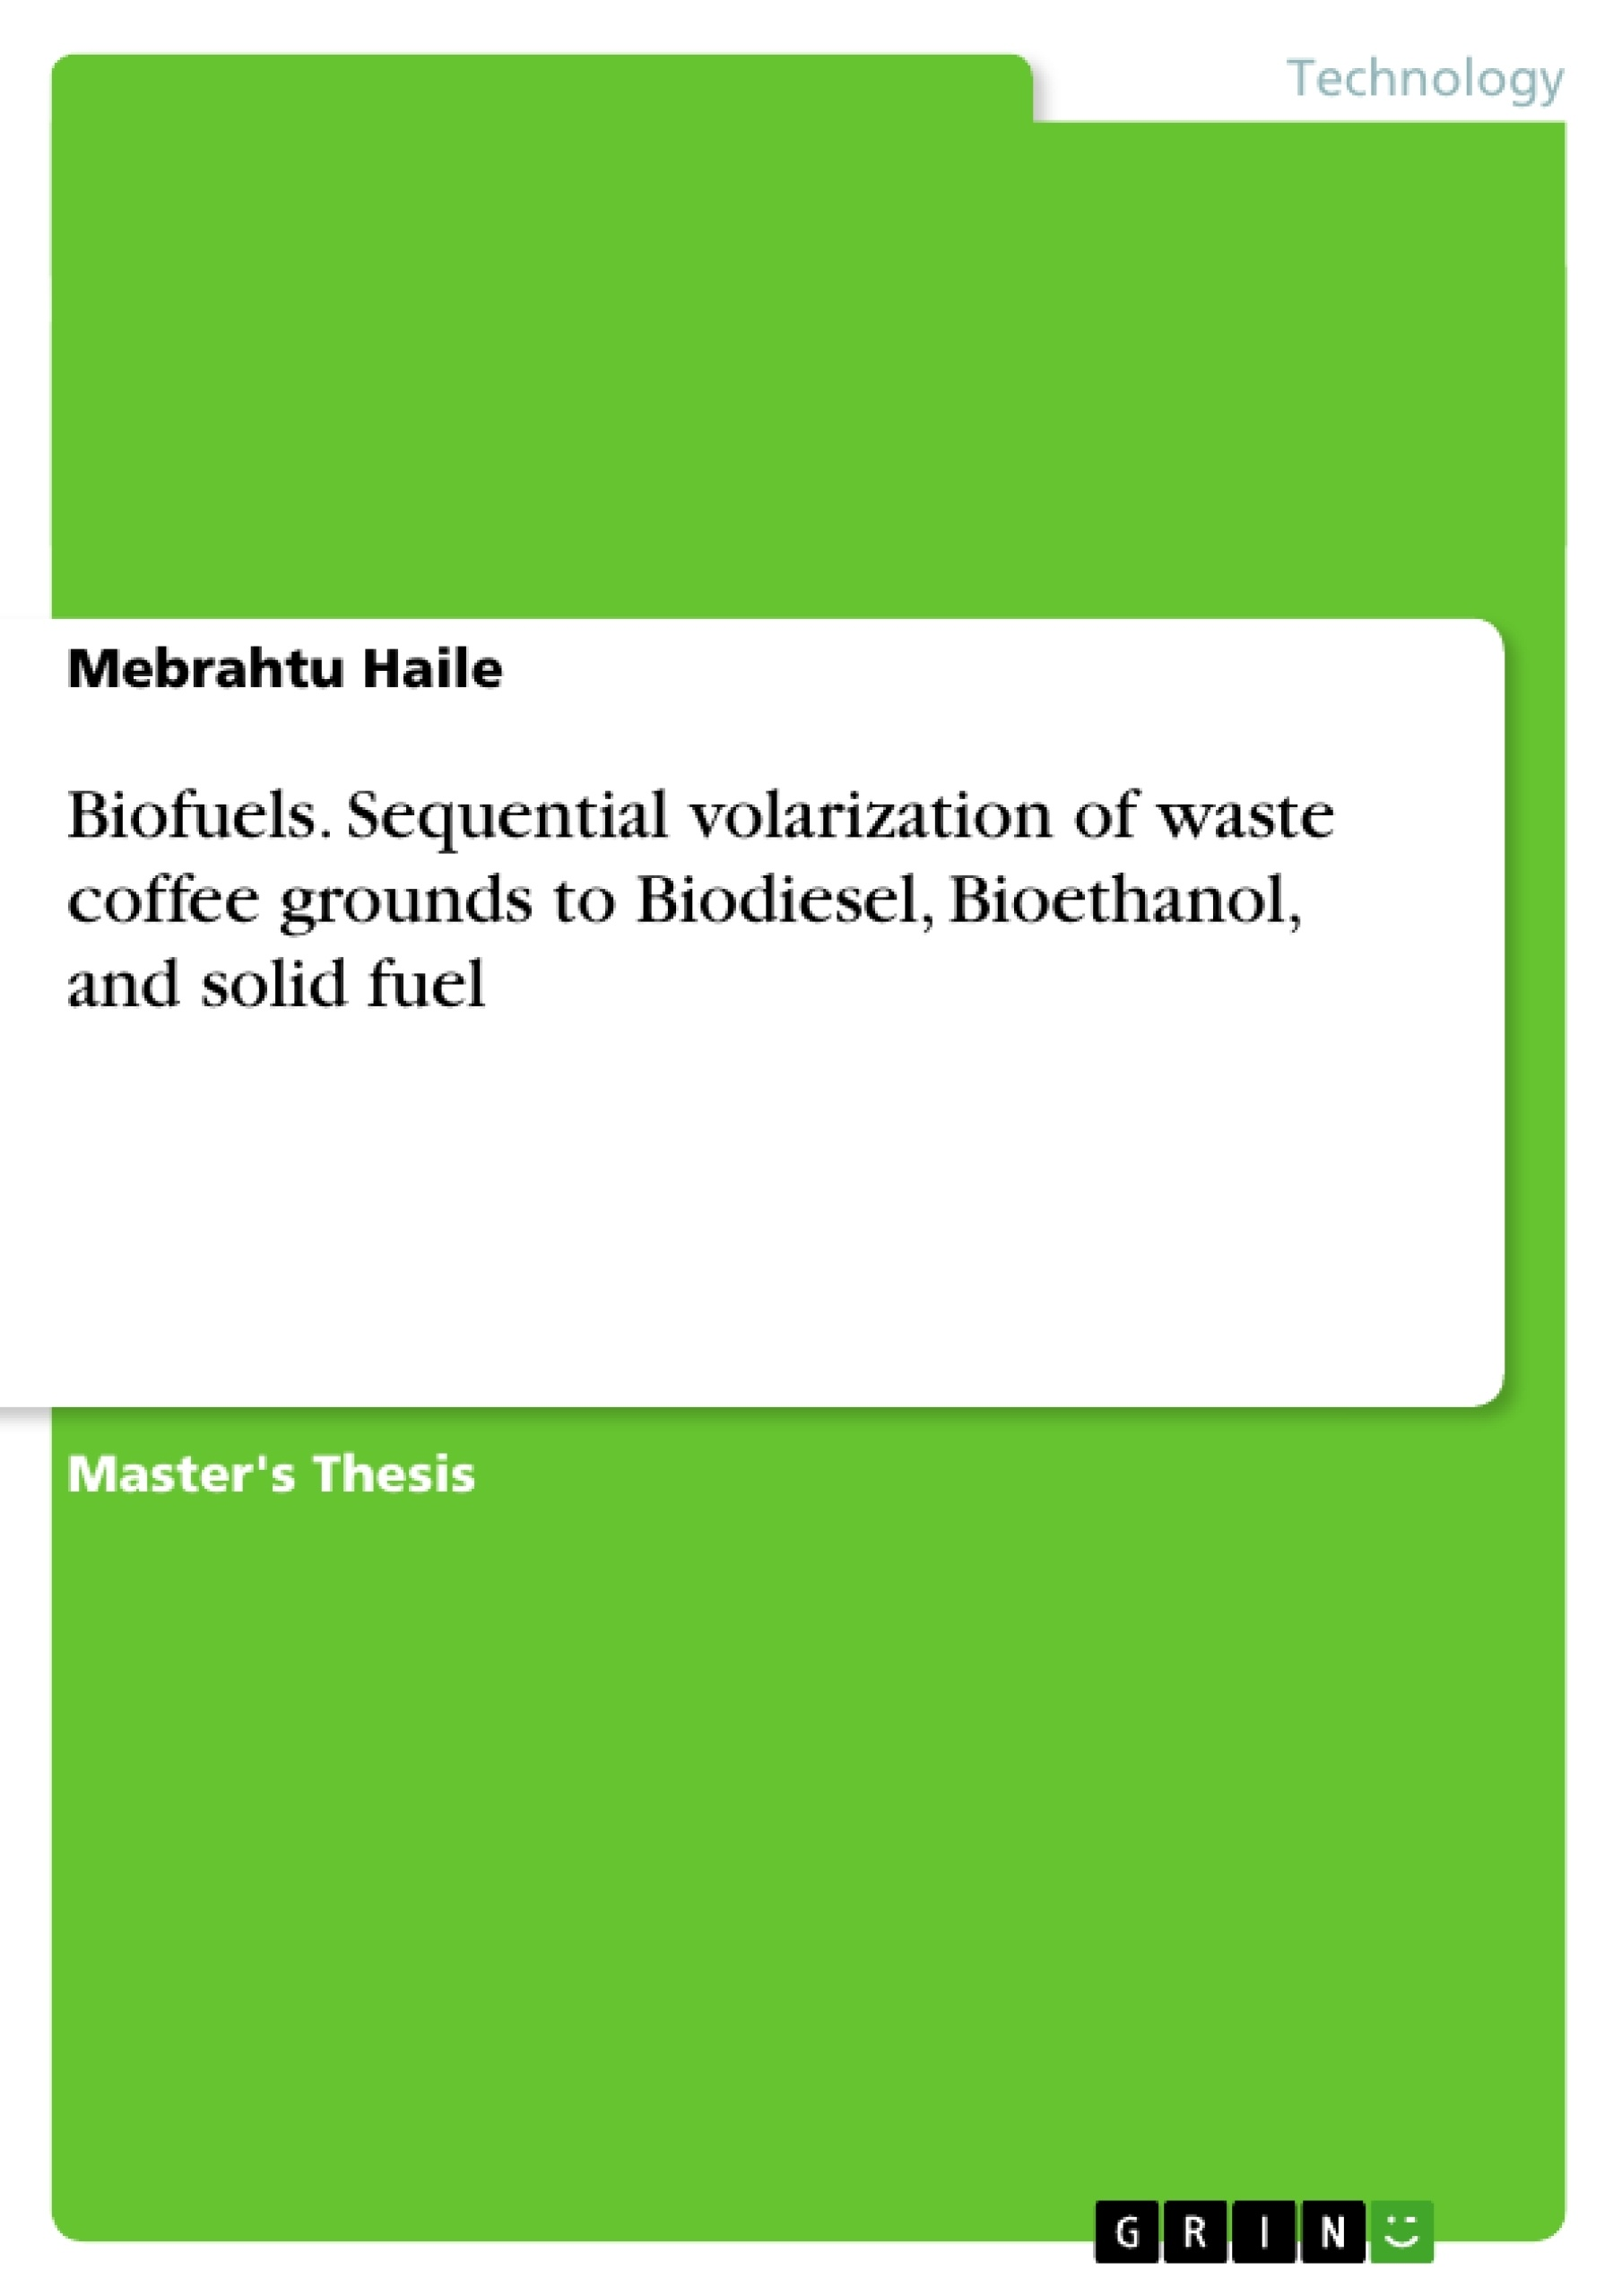 Title: Biofuels. Sequential volarization of waste coffee grounds to  Biodiesel, Bioethanol, and solid fuel